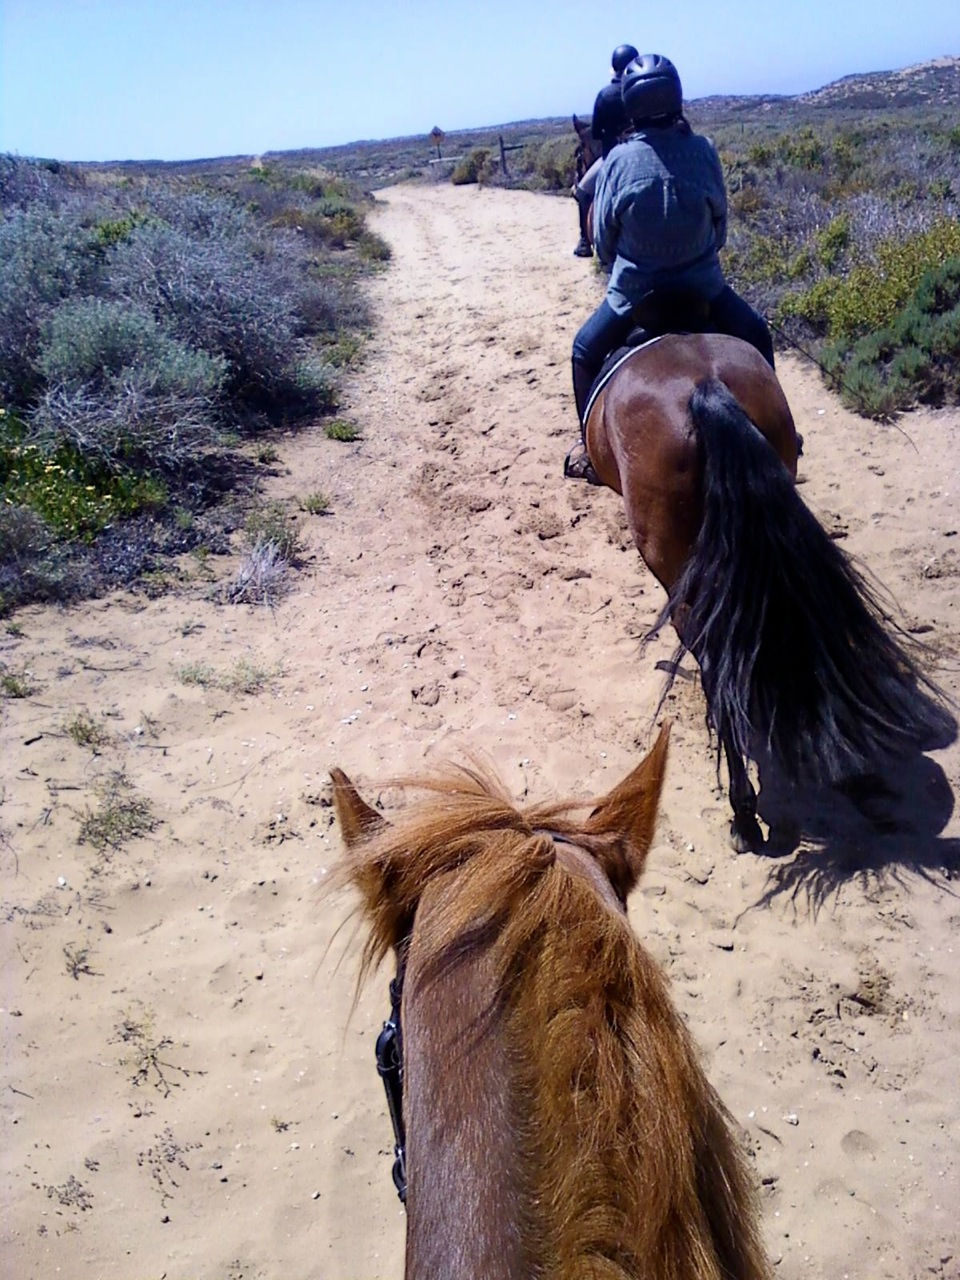 My friend Maria took this one. That's her horse Sullivan at the bottom of the frame. I'm just ahead on the horse with theAMAZING TAIL (sorry).